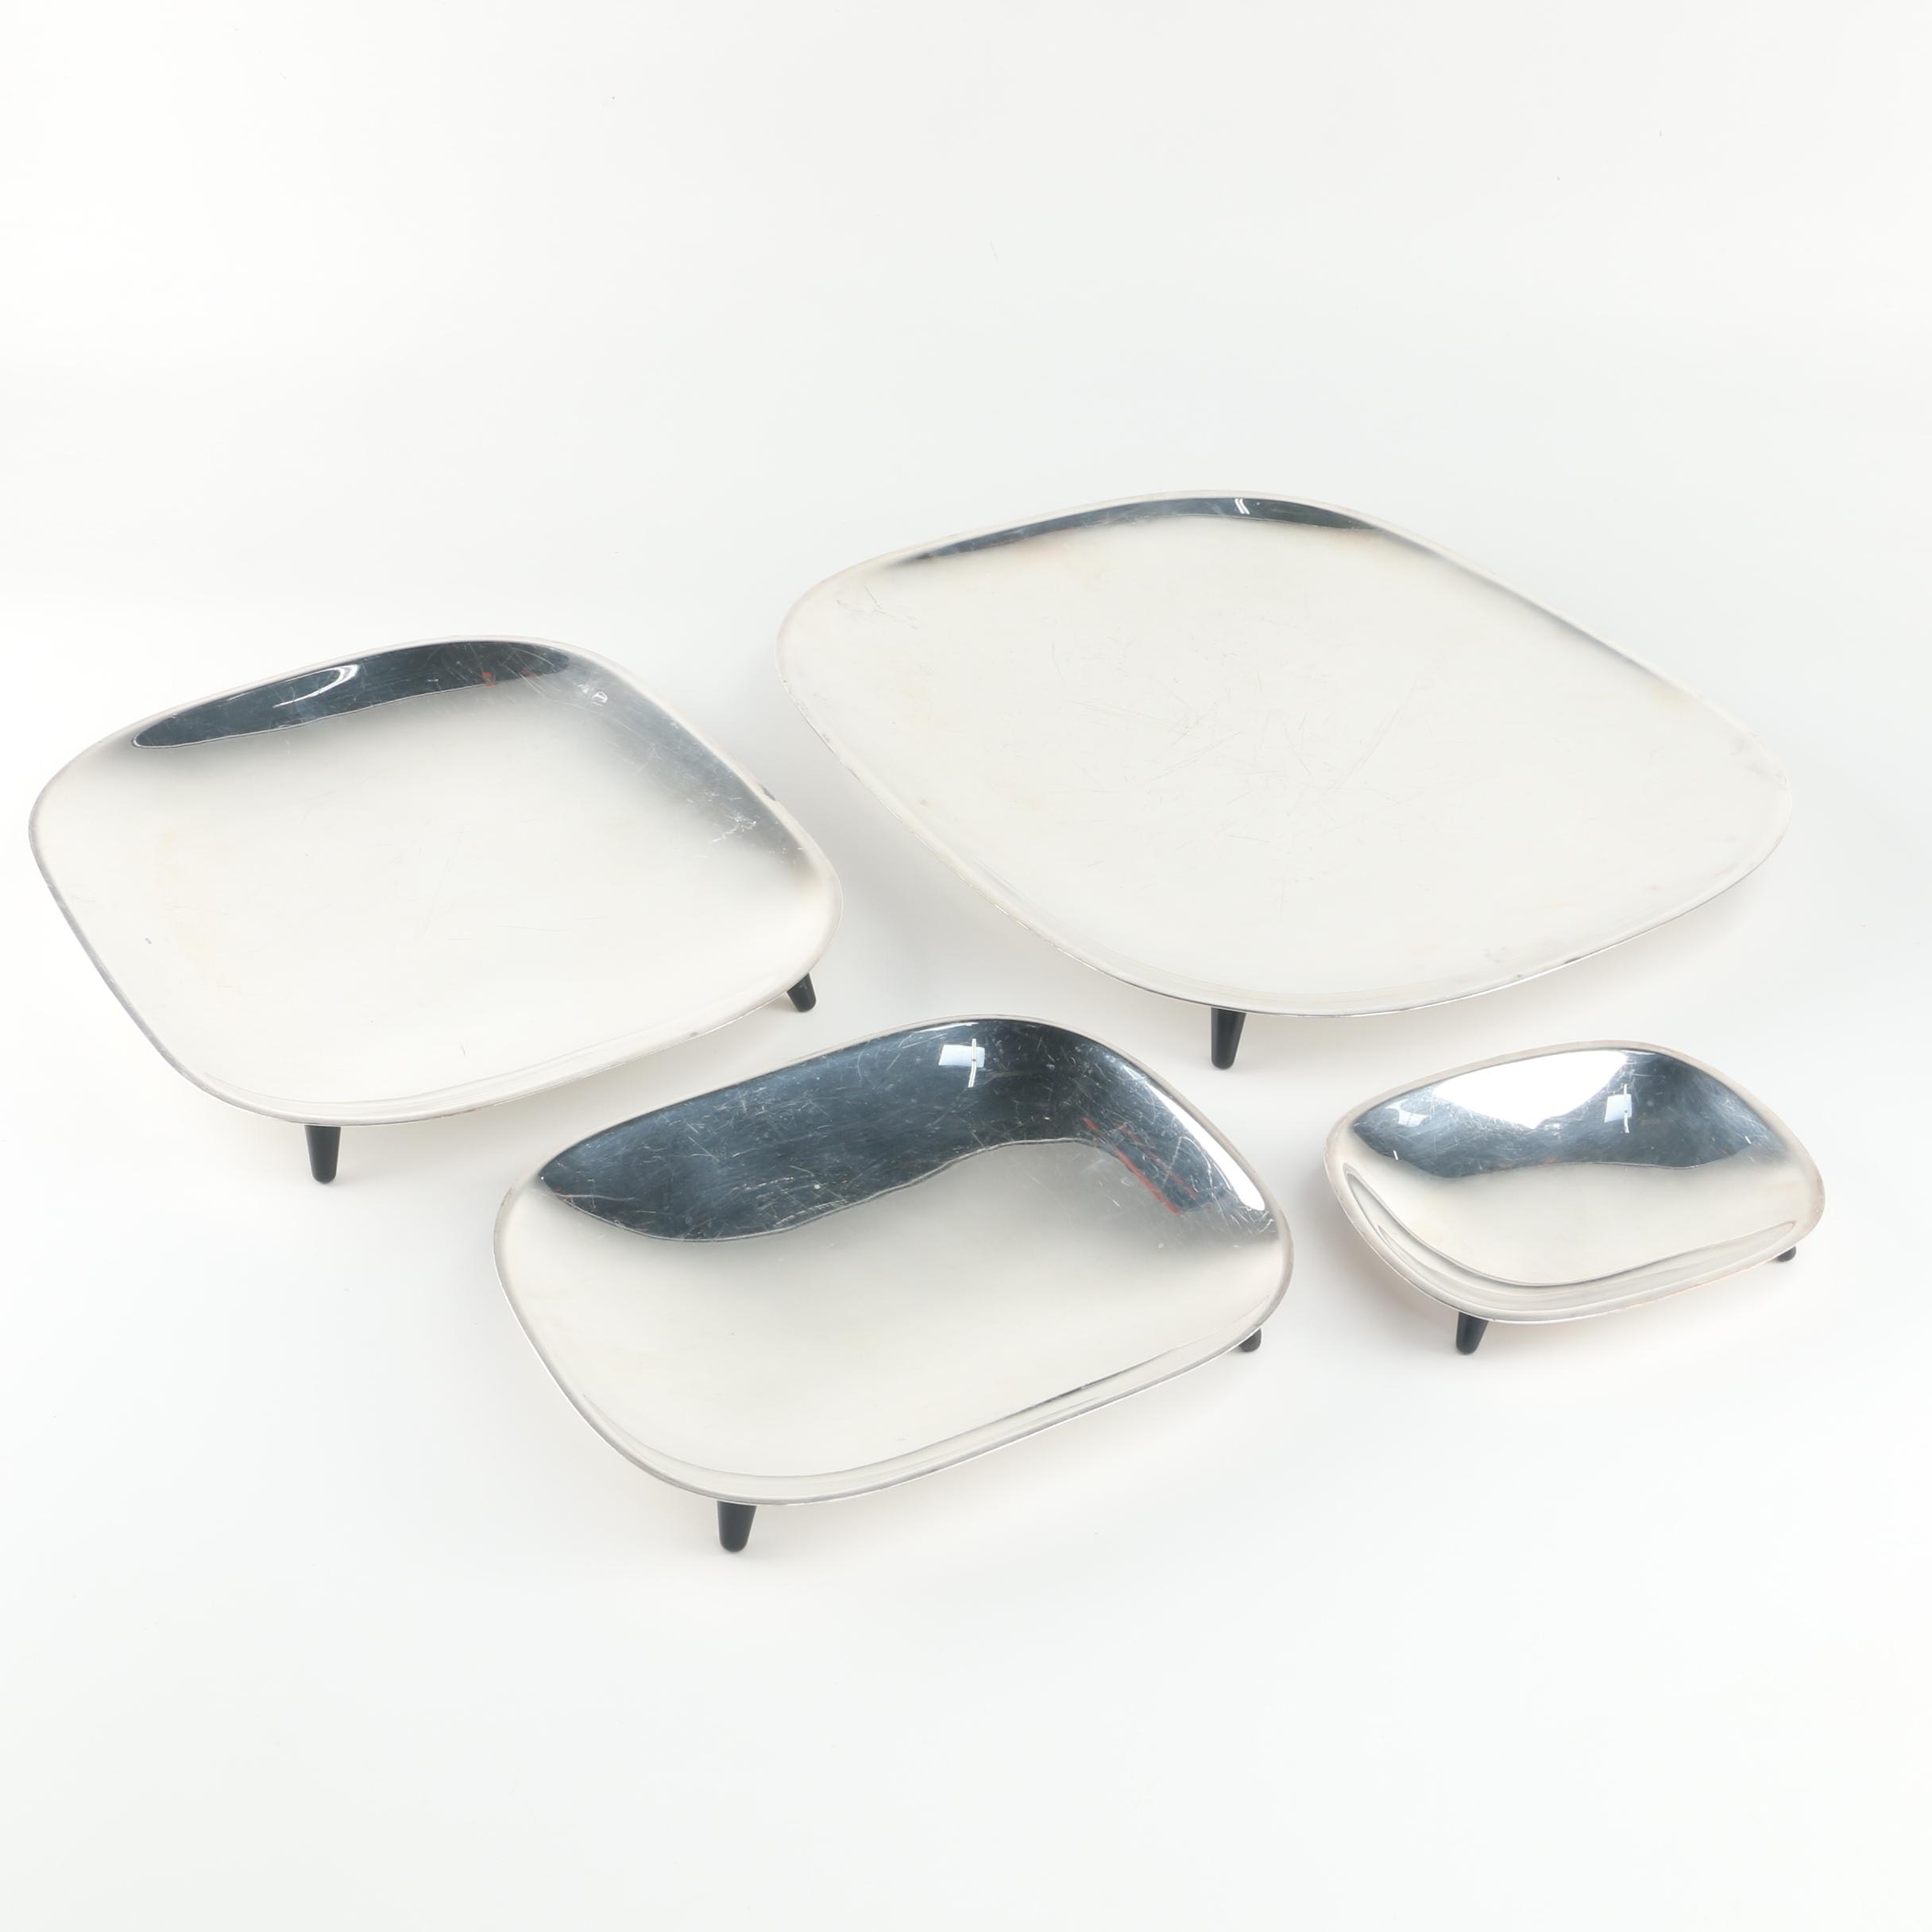 F.B. Rogers Silver Co. Modernist Style Four-Piece Silver Plate Tray Set